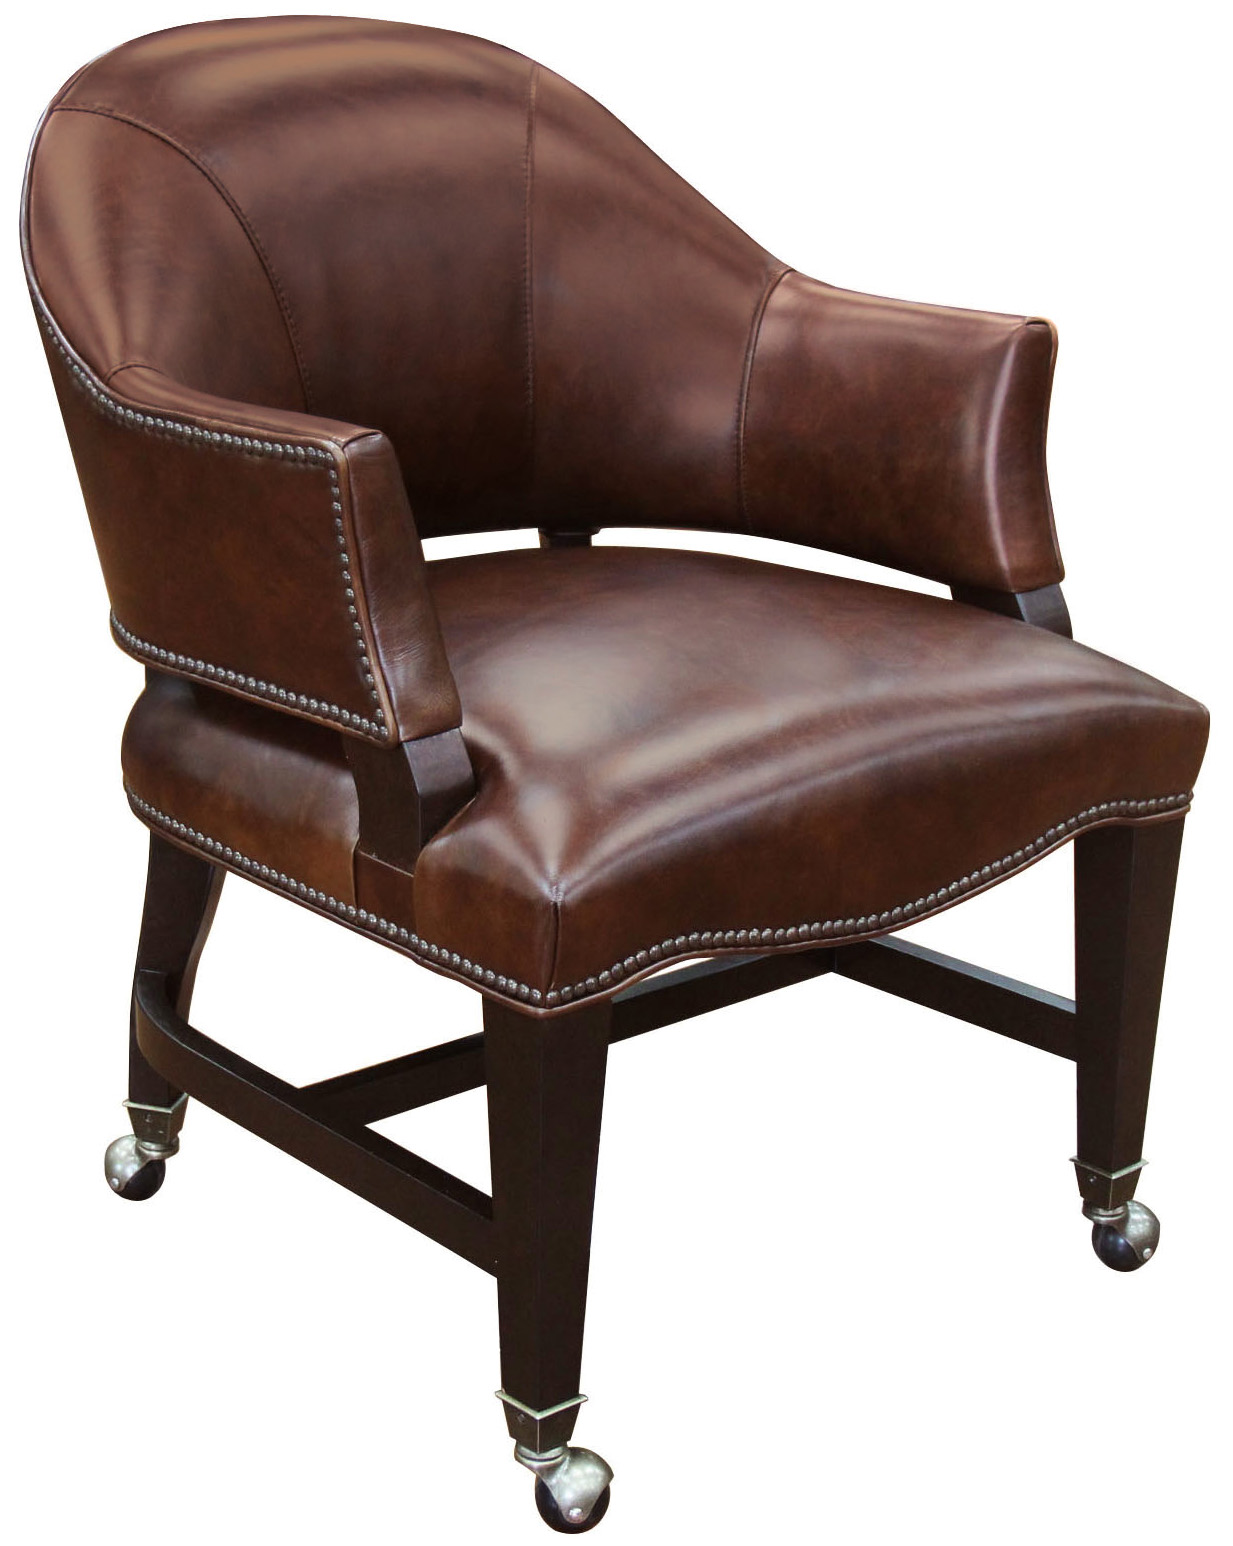 Hamilton Home Game Chairs Isadora Nut Game Chair - Item Number: GC100-086